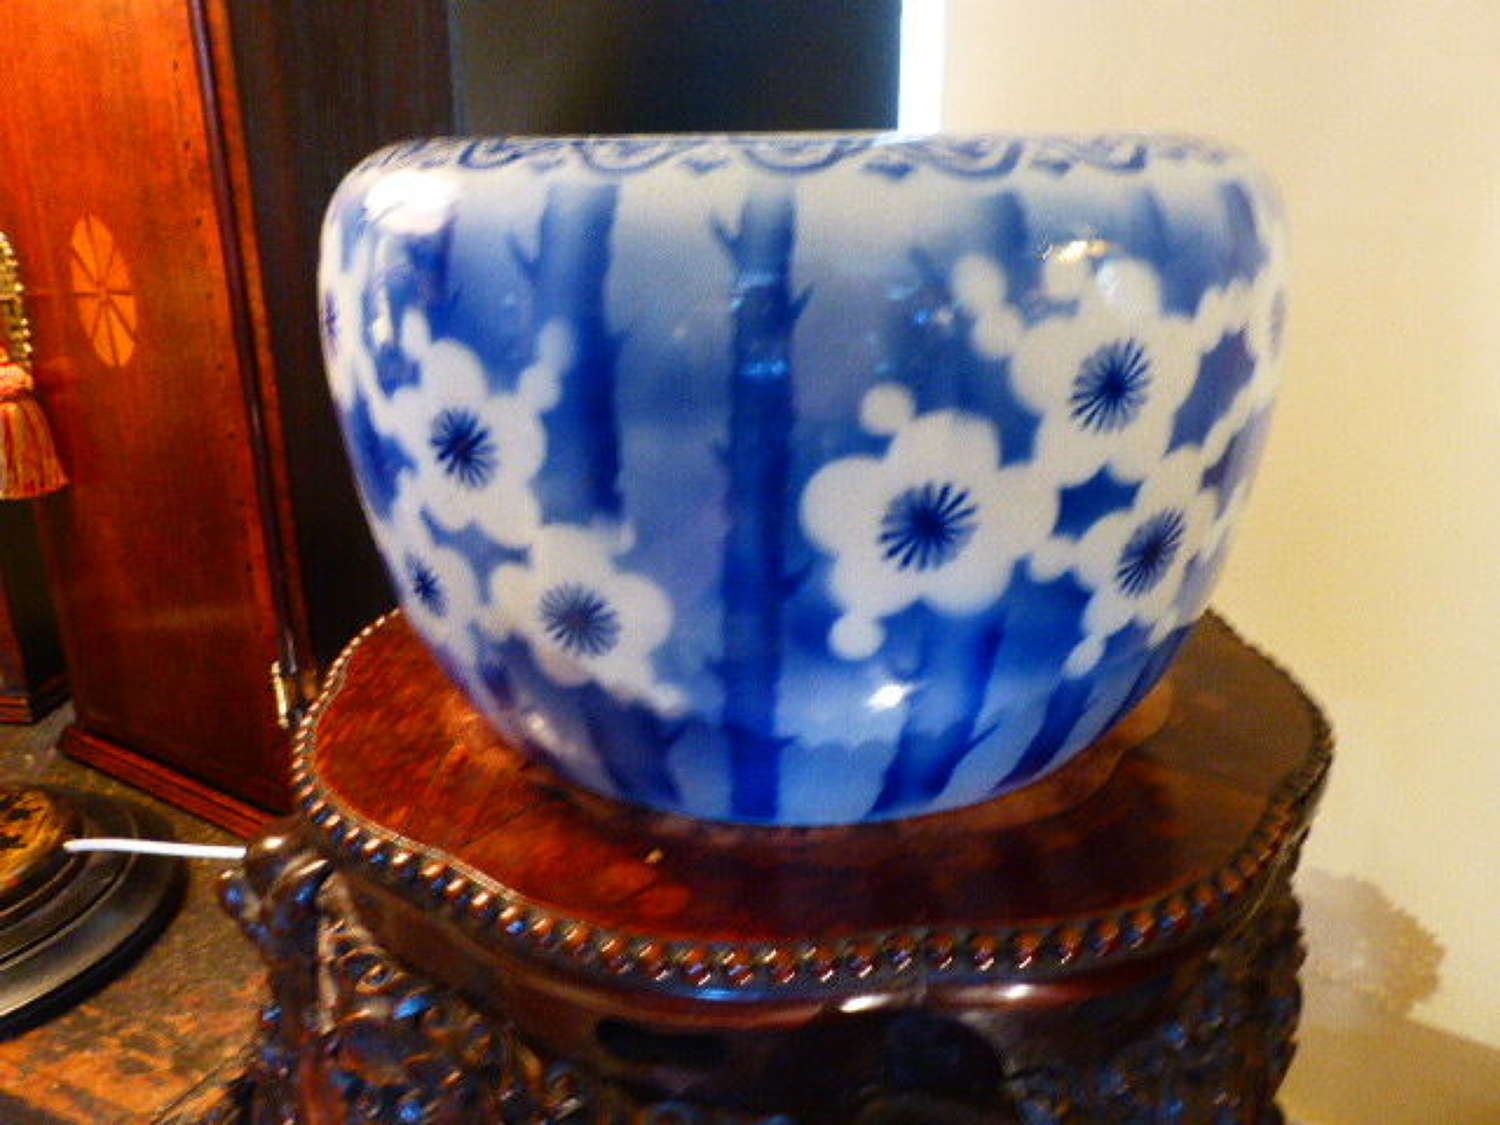 19th century Blue and White Jardiniere